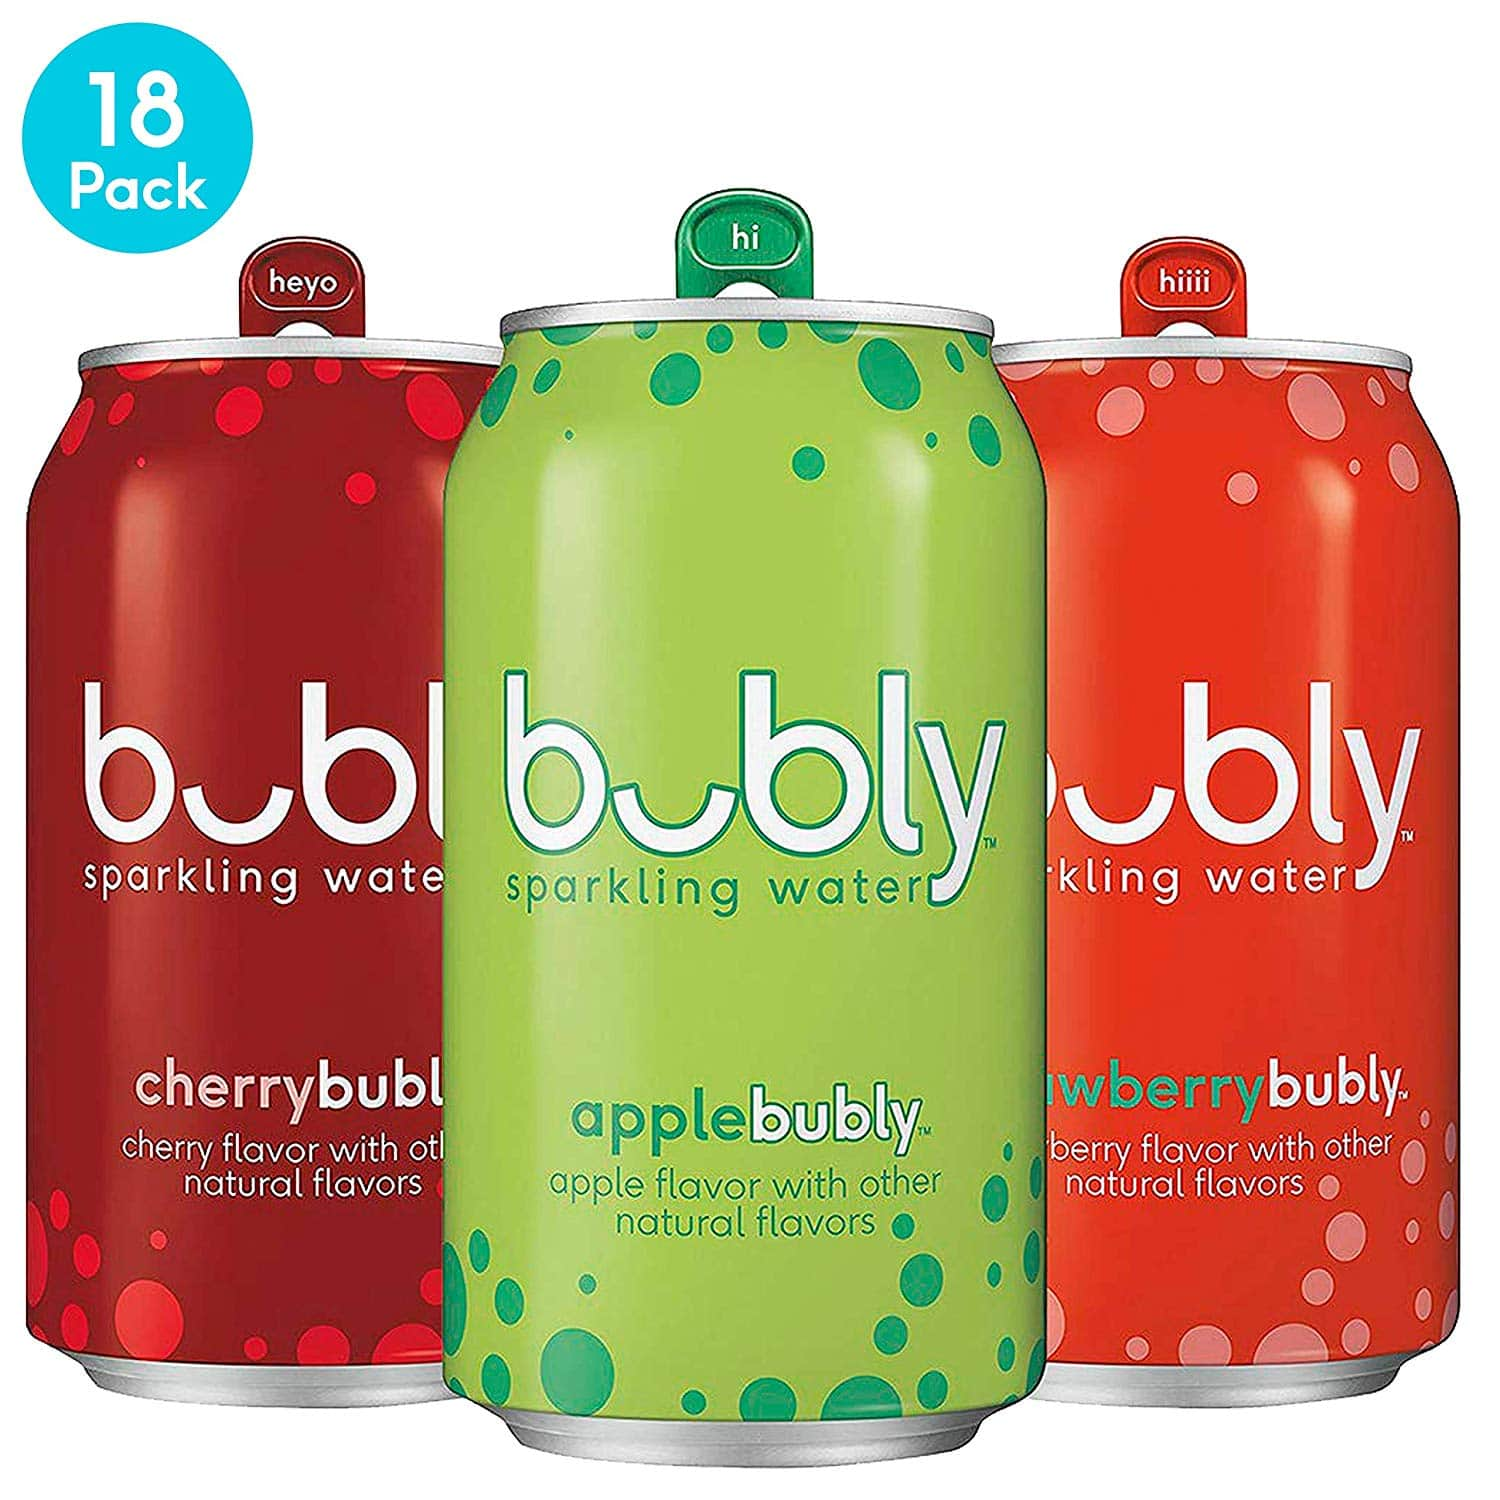 18-Pack of 12oz Bubly Sparkling Water (3-Flavor Variety Pack)